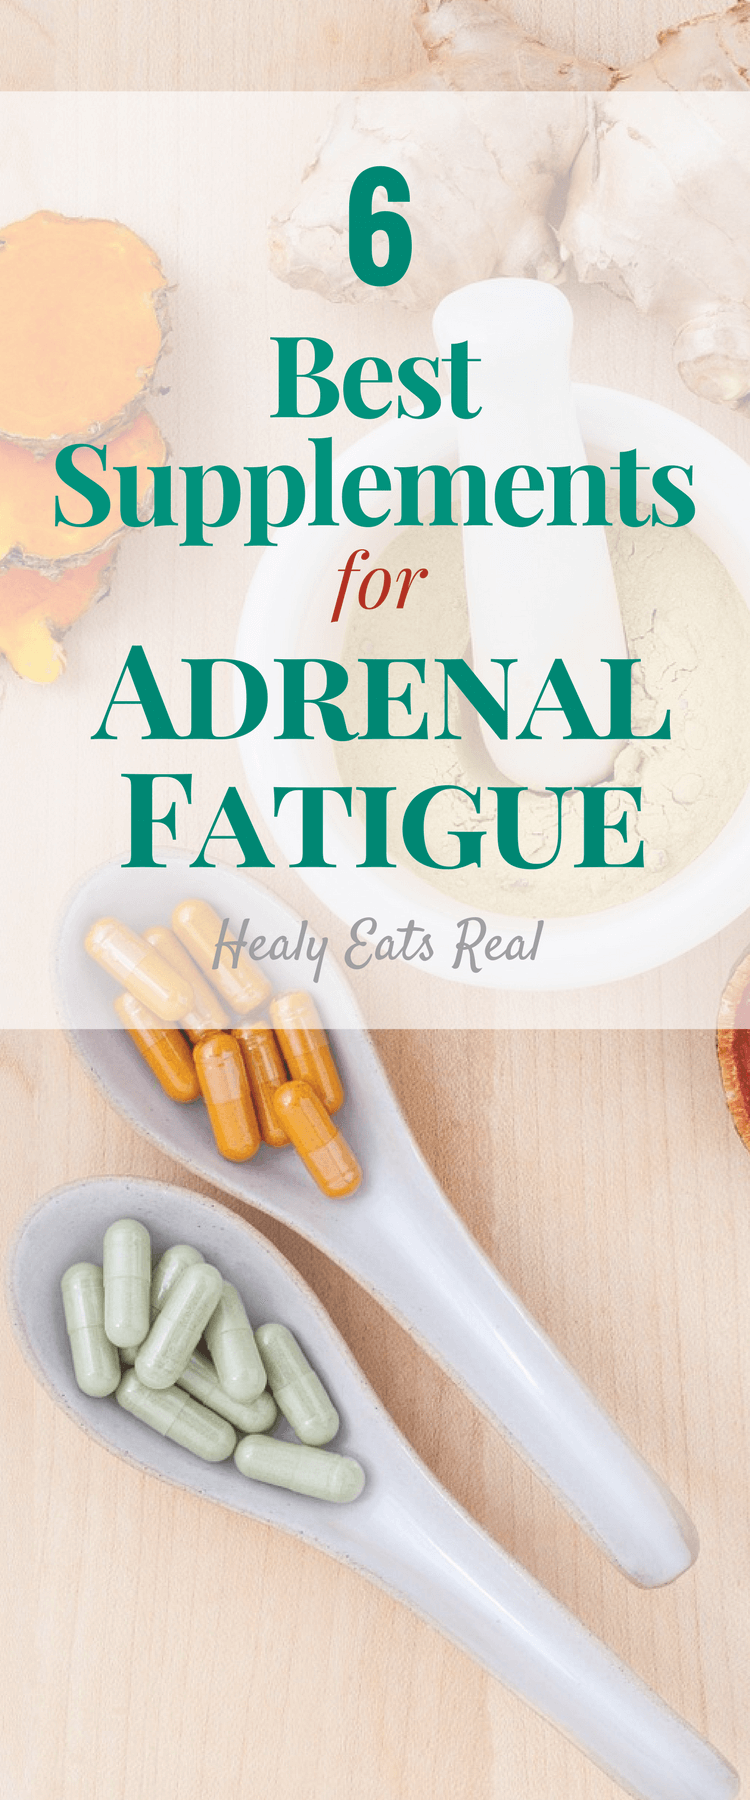 6 Best Supplements for Adrenal Fatigue #health